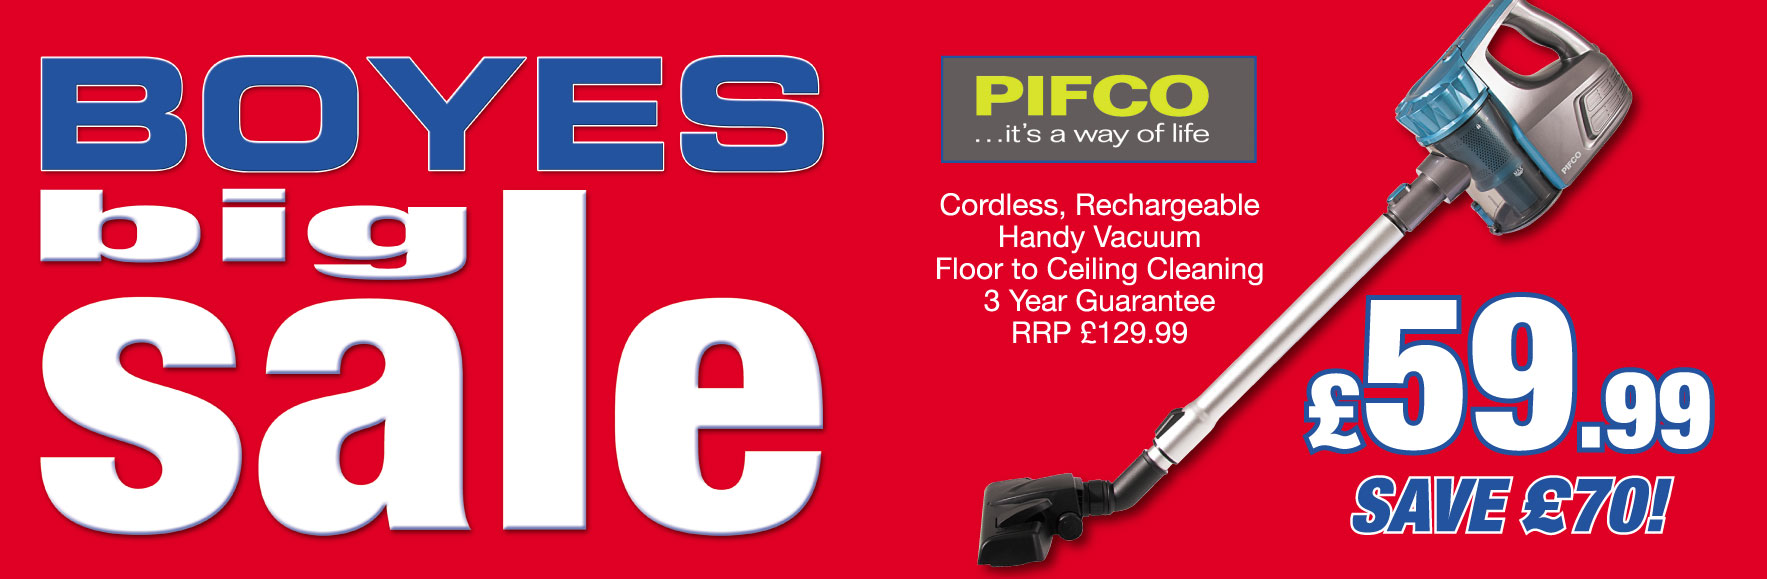 Pifco Cordless Rechargeable Handy Vacuum HALF RRP